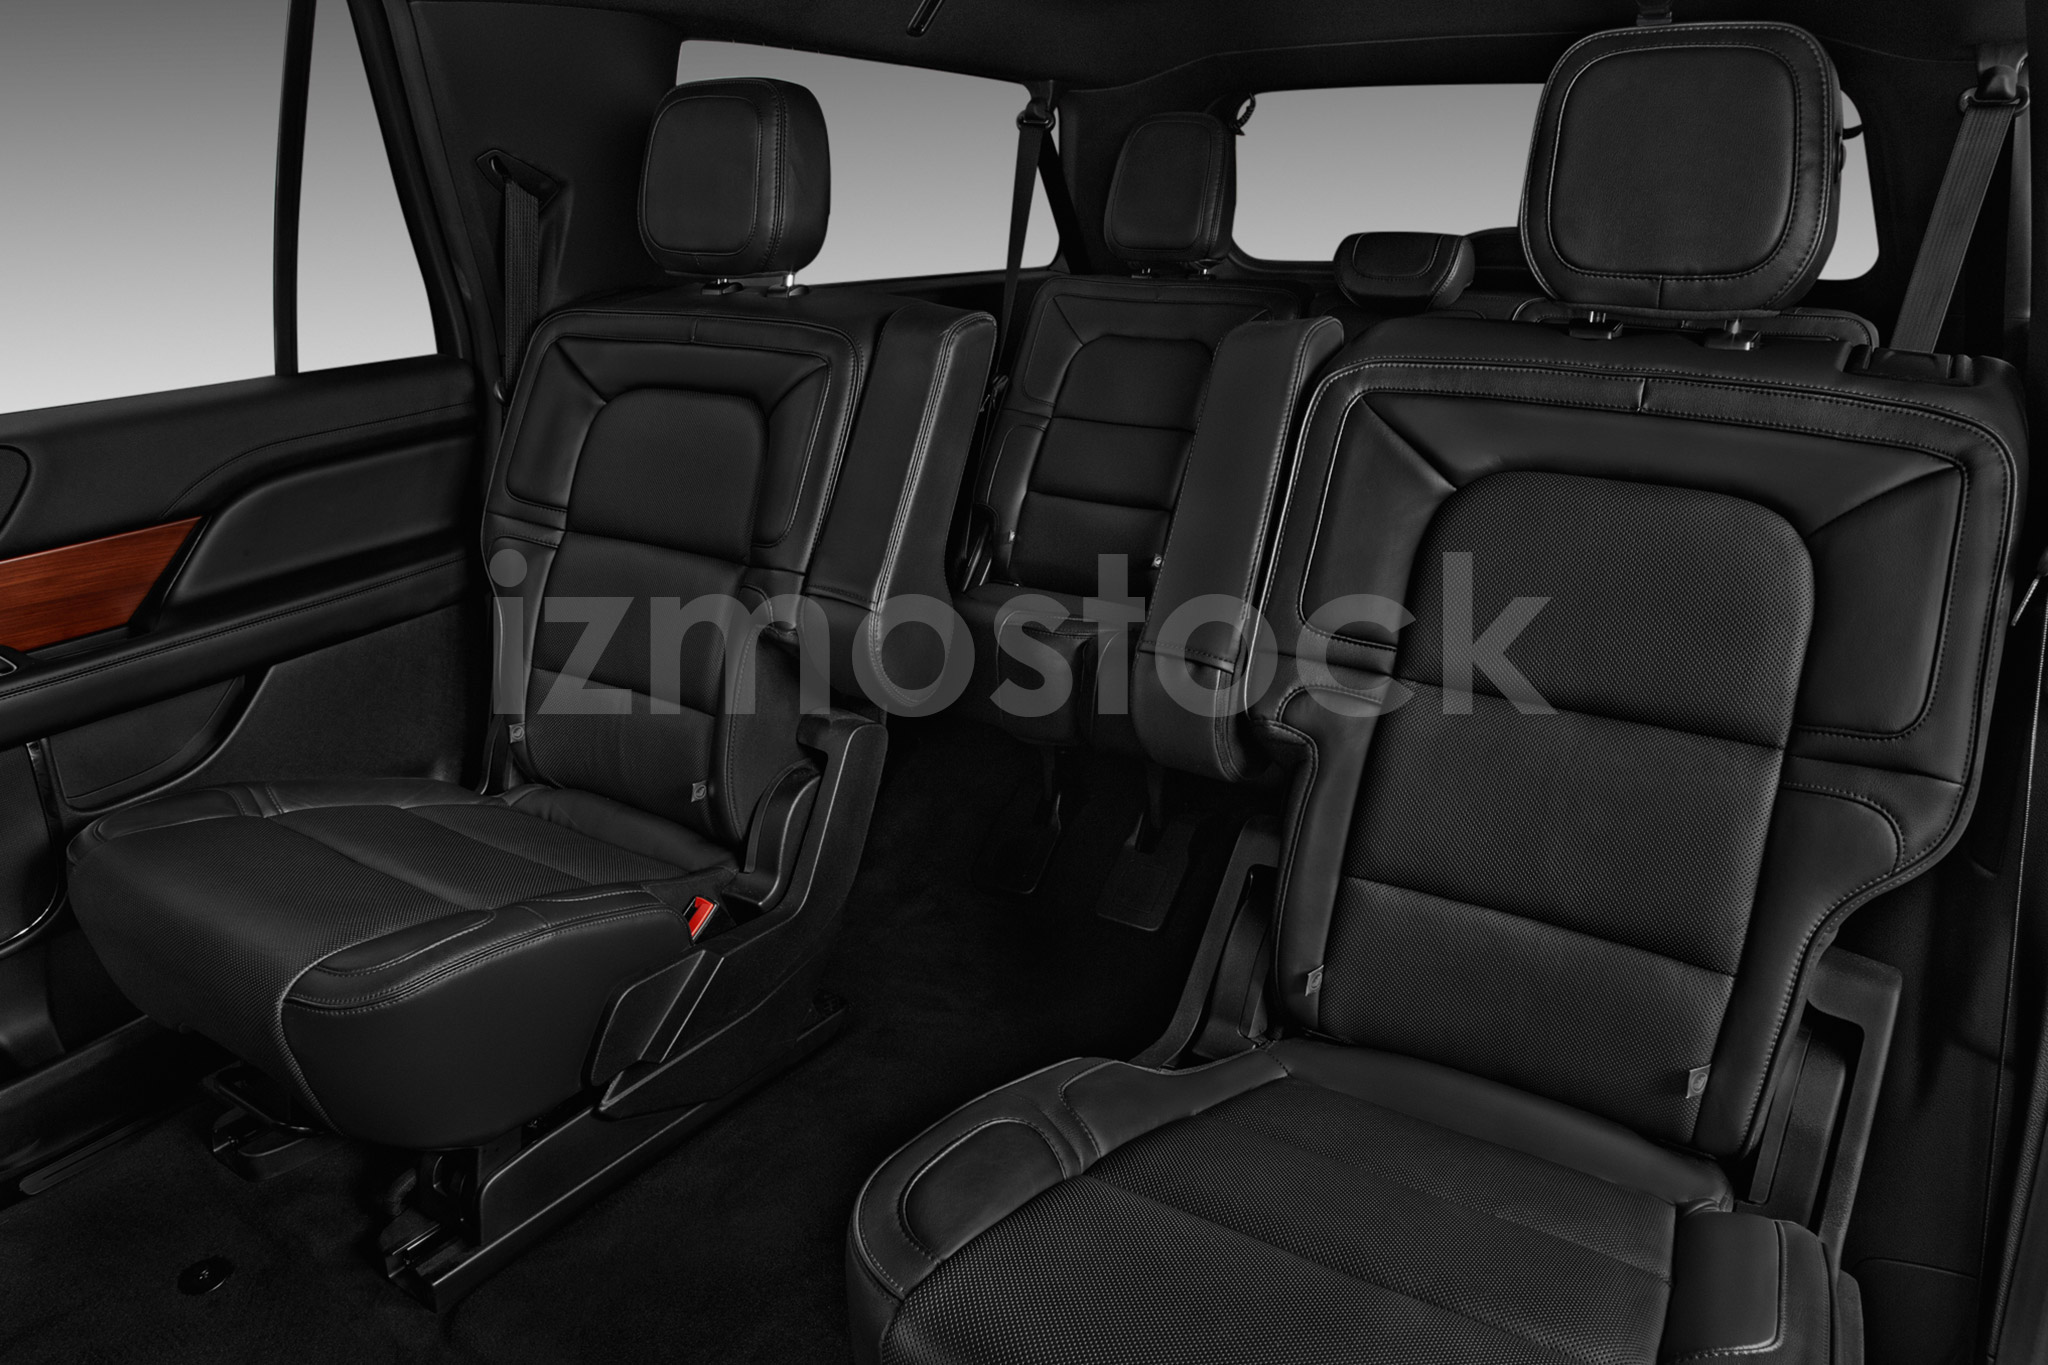 lincoln_18navigatorselect4a_rearseat